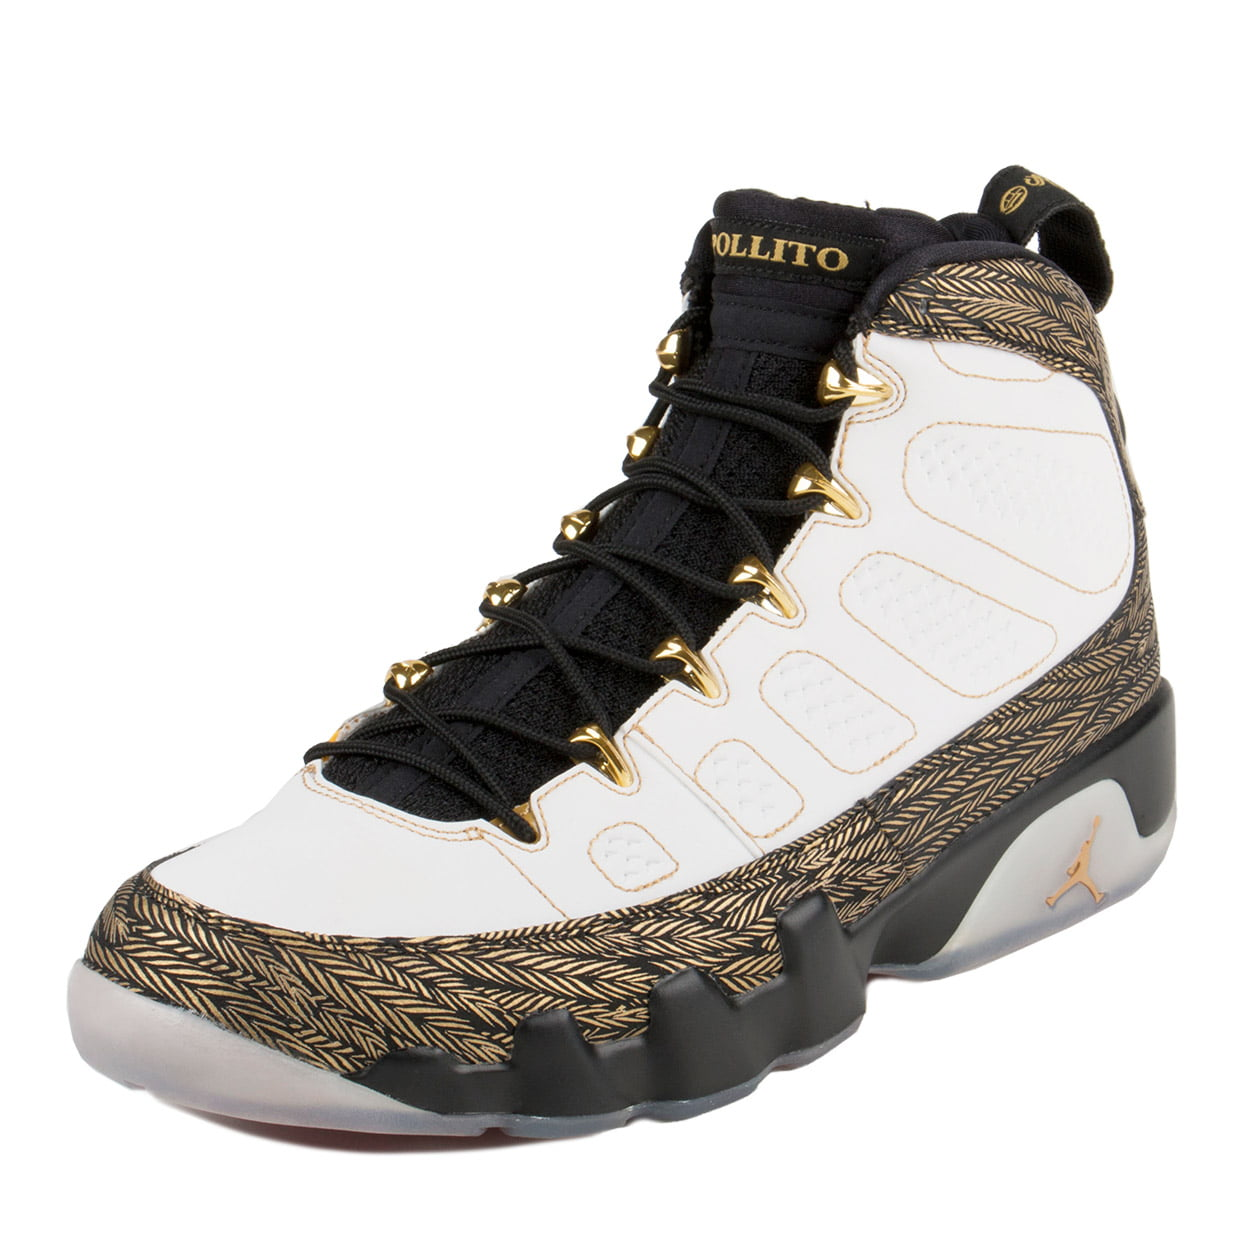 780ac257d4f ... greece nike nike mens air jordan 9 retro db doernbacher white gold black  580892 170 walmart